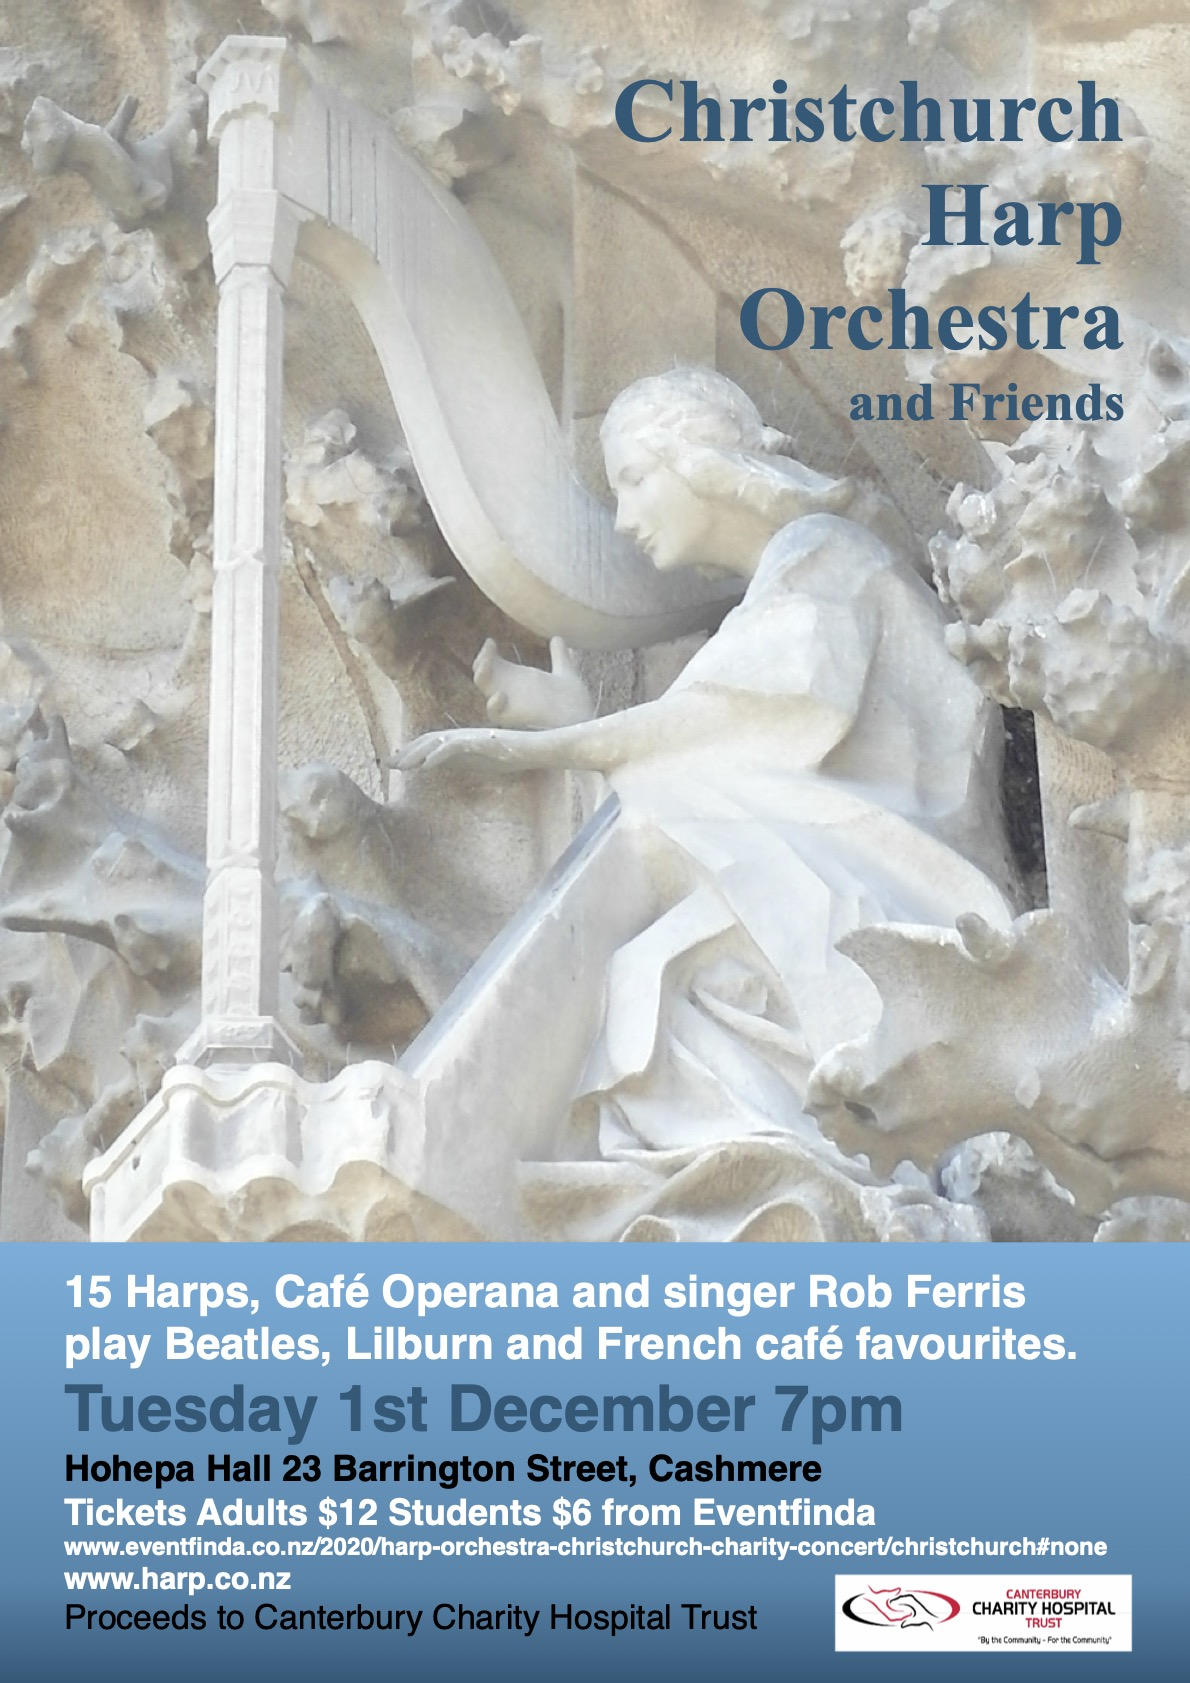 Harp orchestra and friends poster